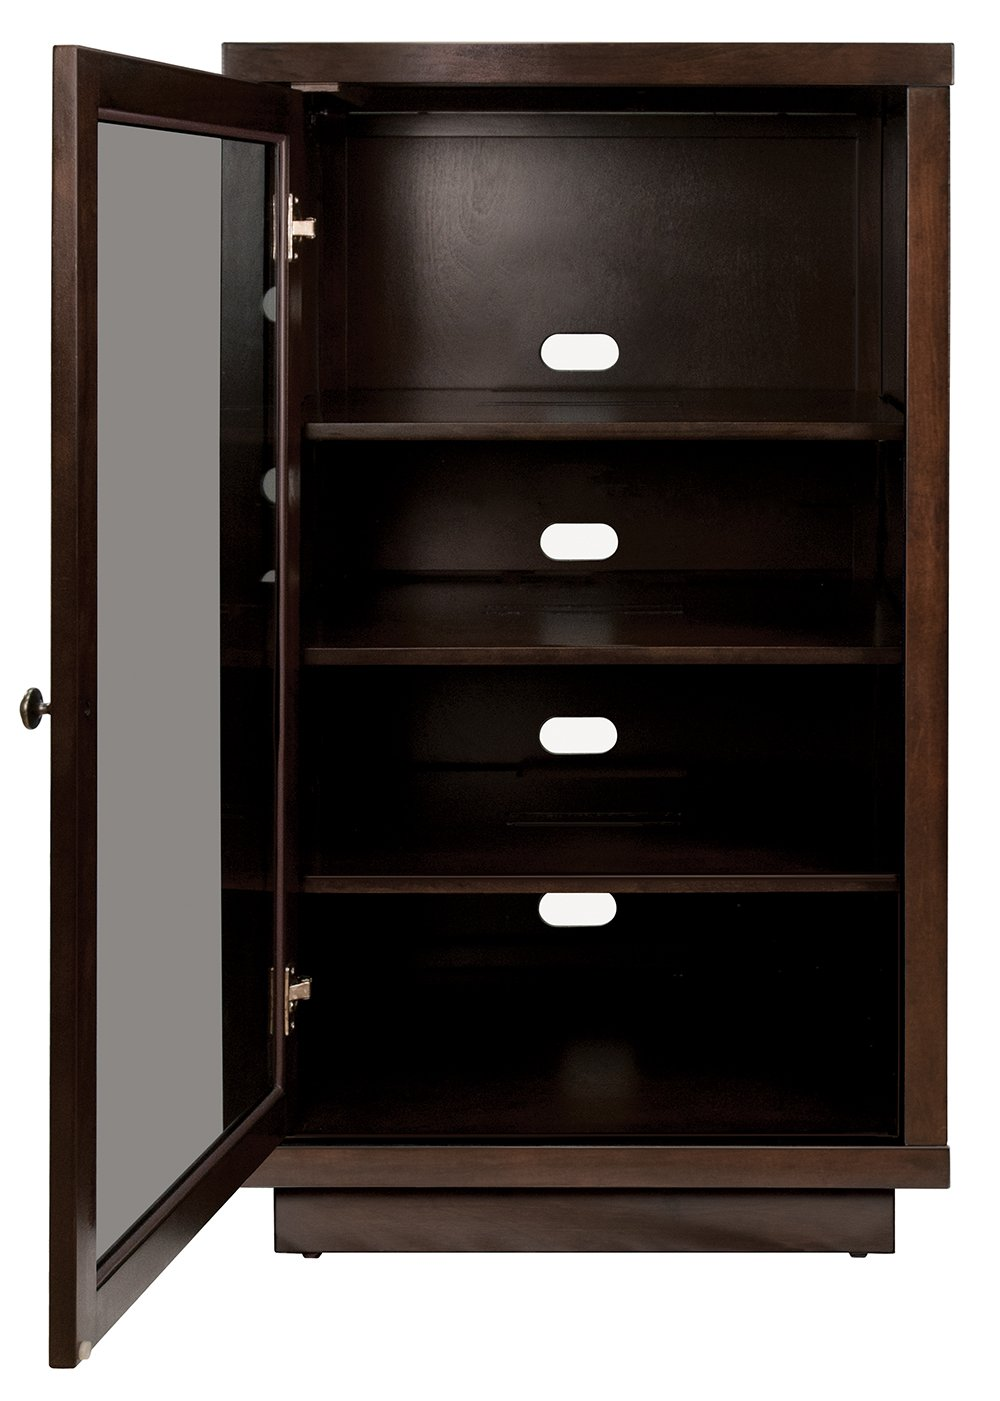 audio furniture audio racks and cabinets bell o atc402 audio component cabinet espresso 10794